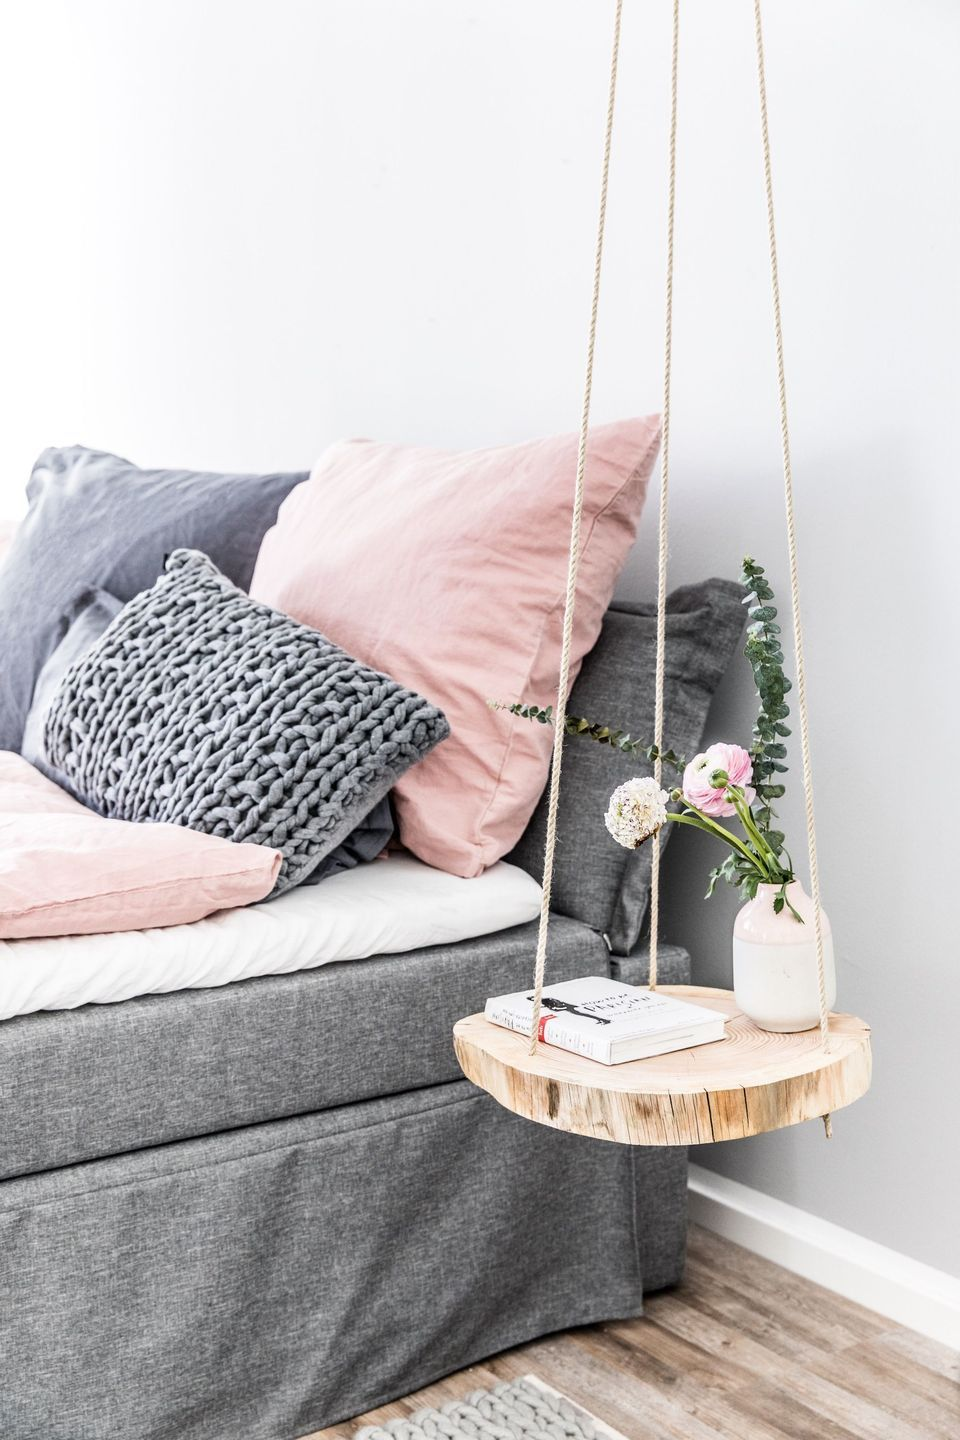 50 Cool Hanging Side Table with Rope Design Inspirations - DecOMG